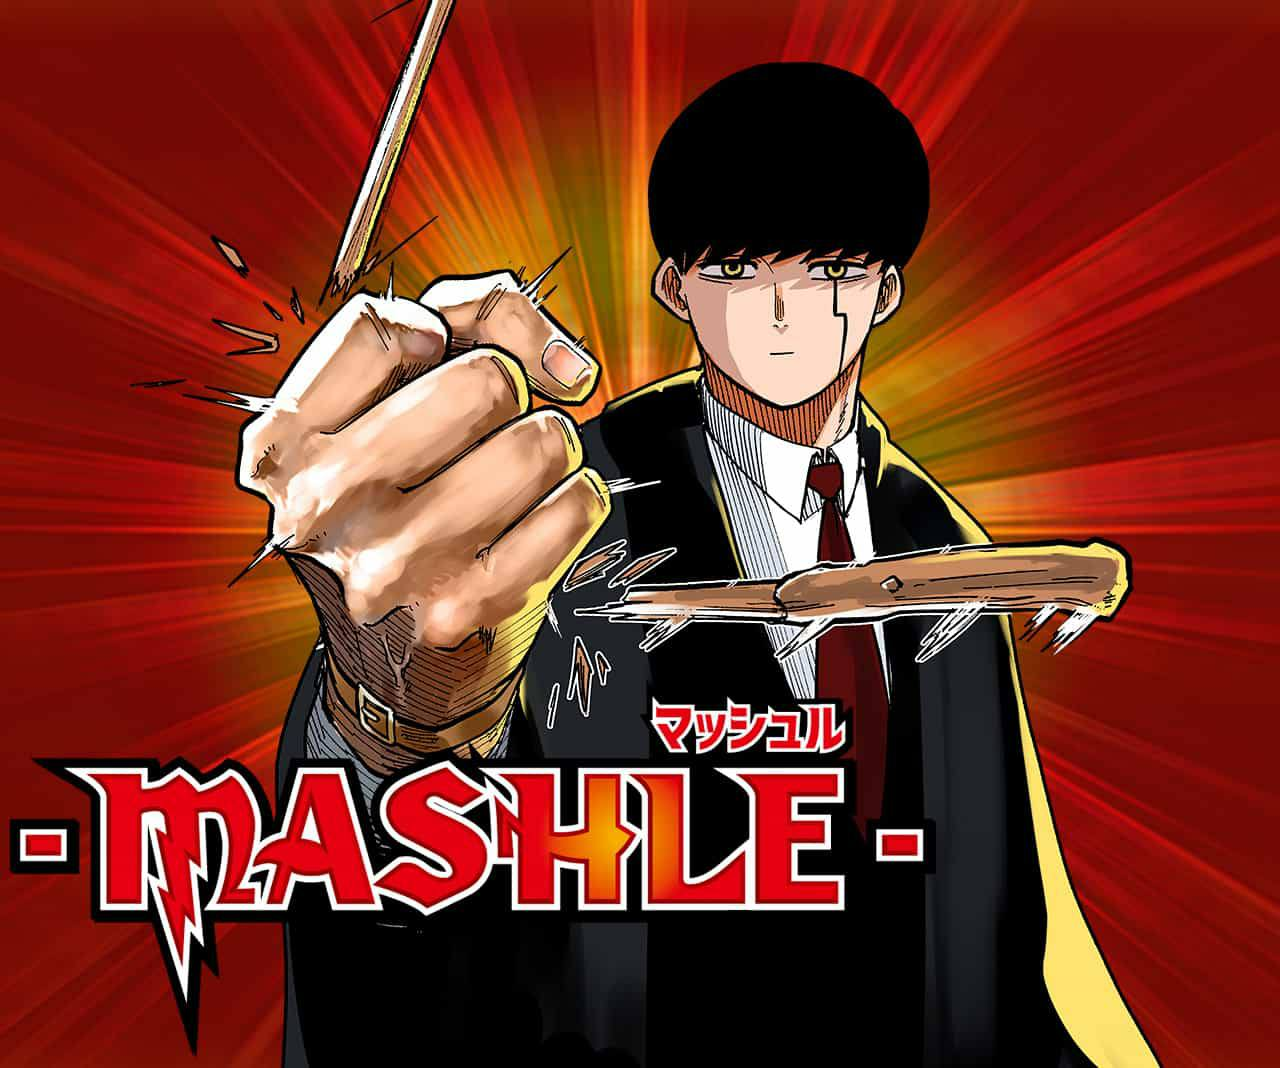 Mashle: Magic and Muscles Chapter 28 Release Date, Raw Scans, Spoilers, Read Online